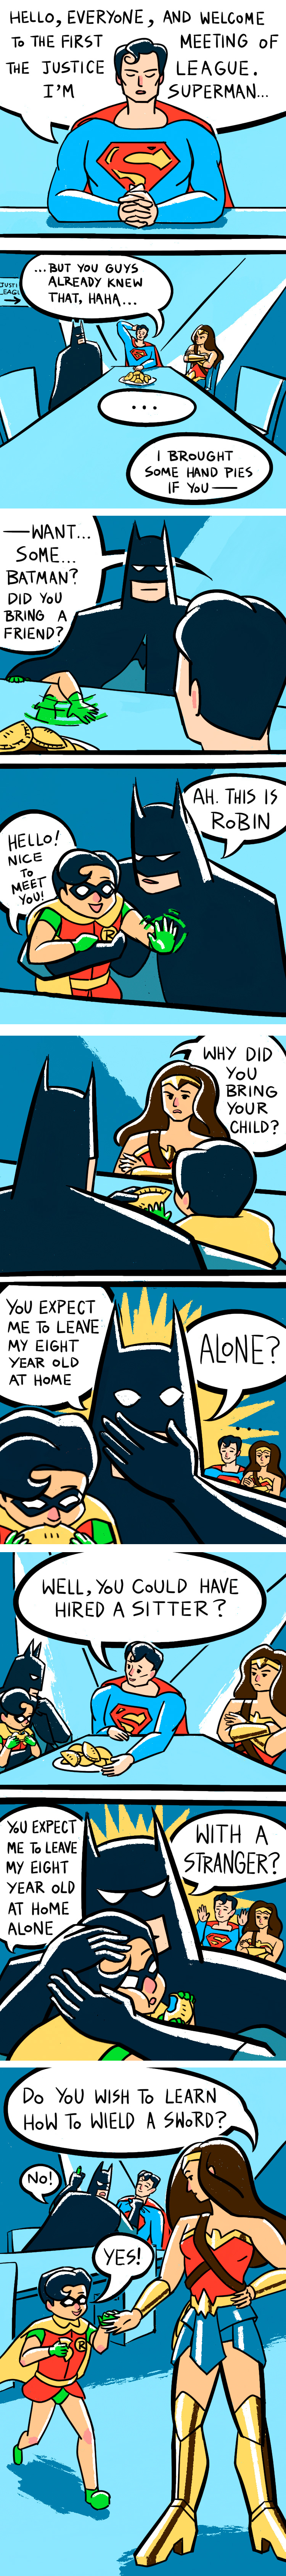 When Alfred is not there, Batman has to take care of Robin